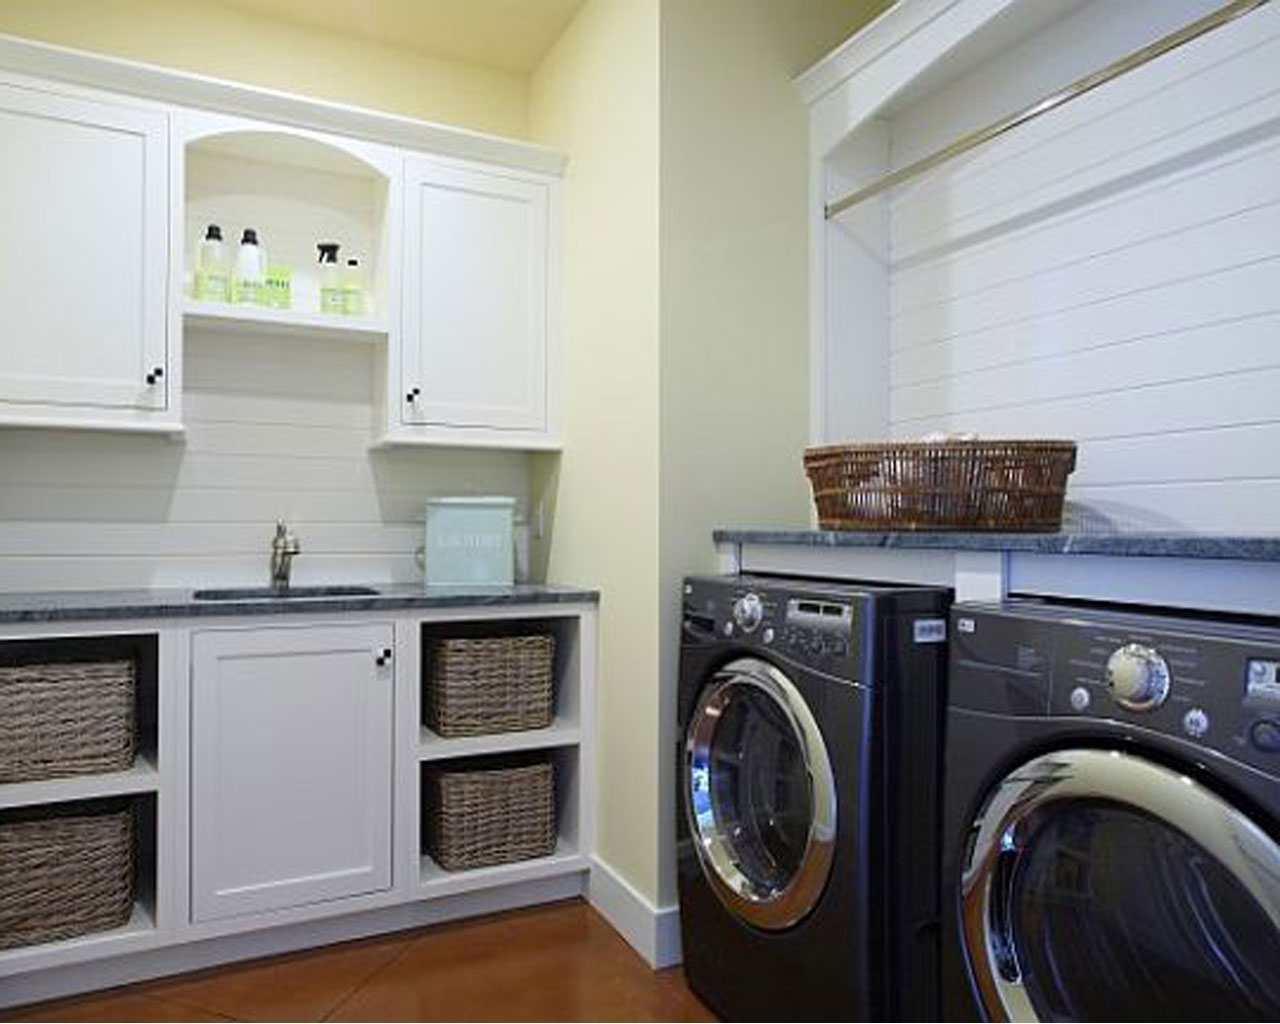 Beau Tidy And Livable Laundry Room Idea With Washing And Drying Machines And  White Wall And Basket